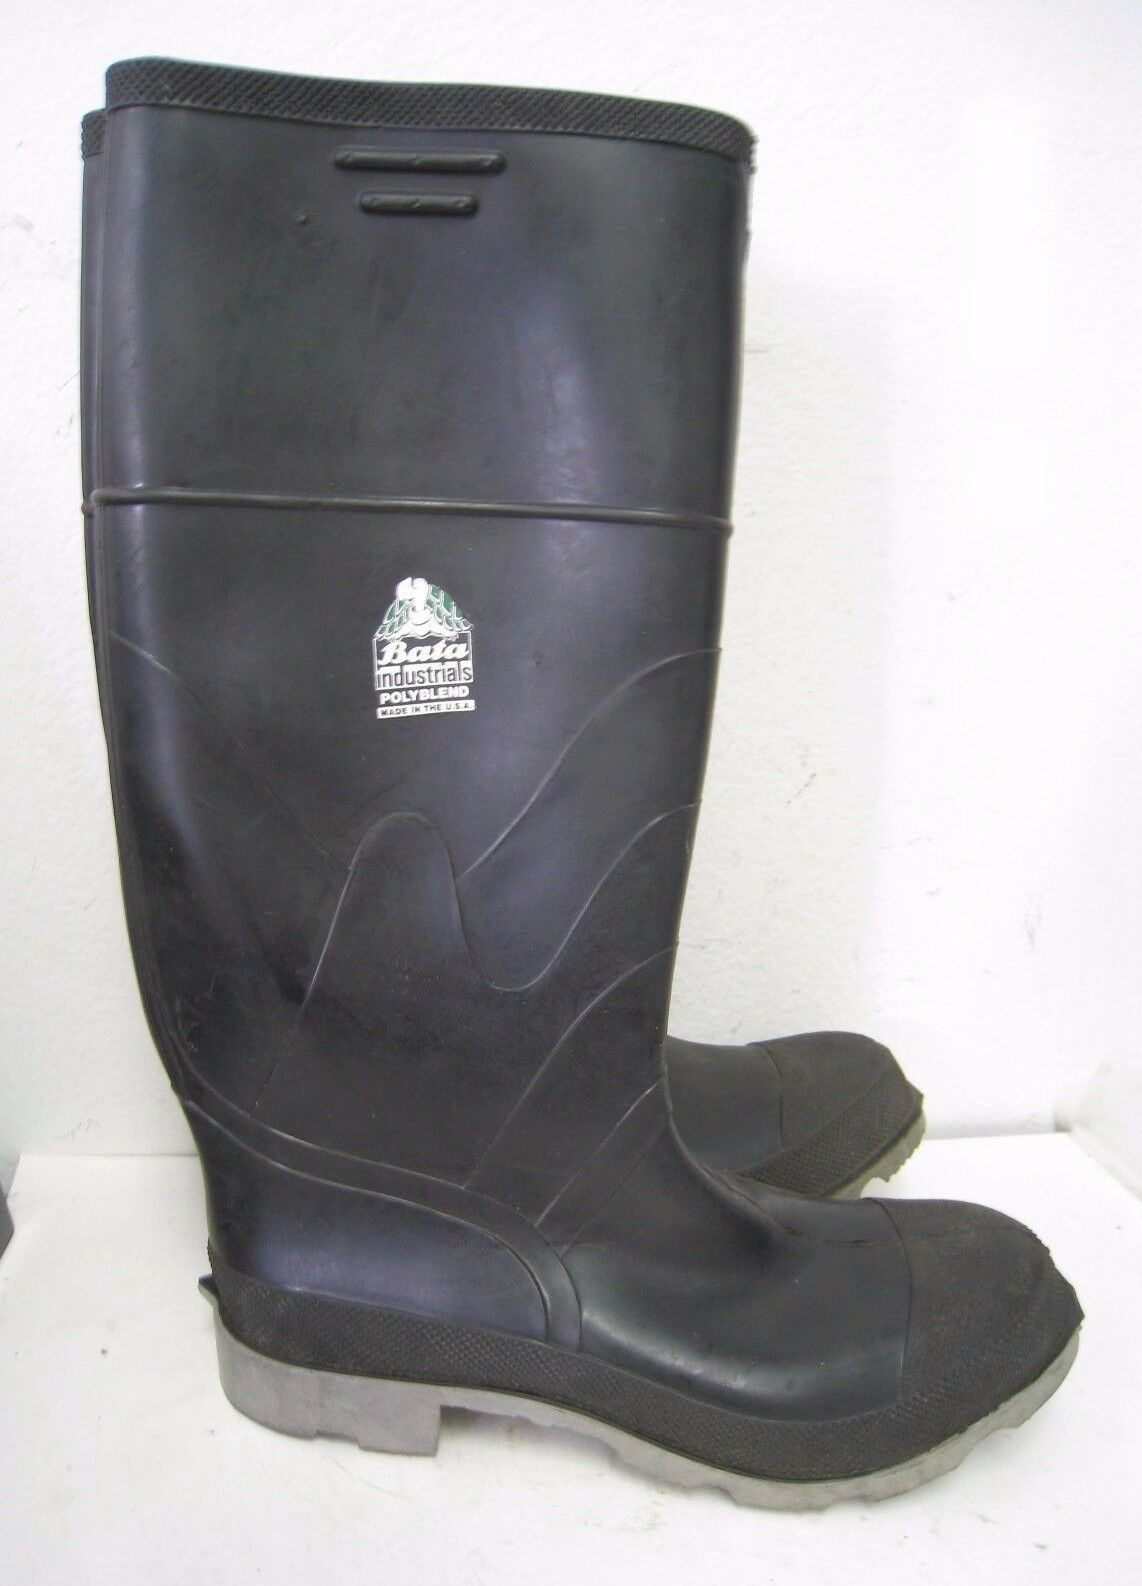 Bata Industrials Black 16  Safety Gumboots Size 10 , Work boots PPE Waterproof